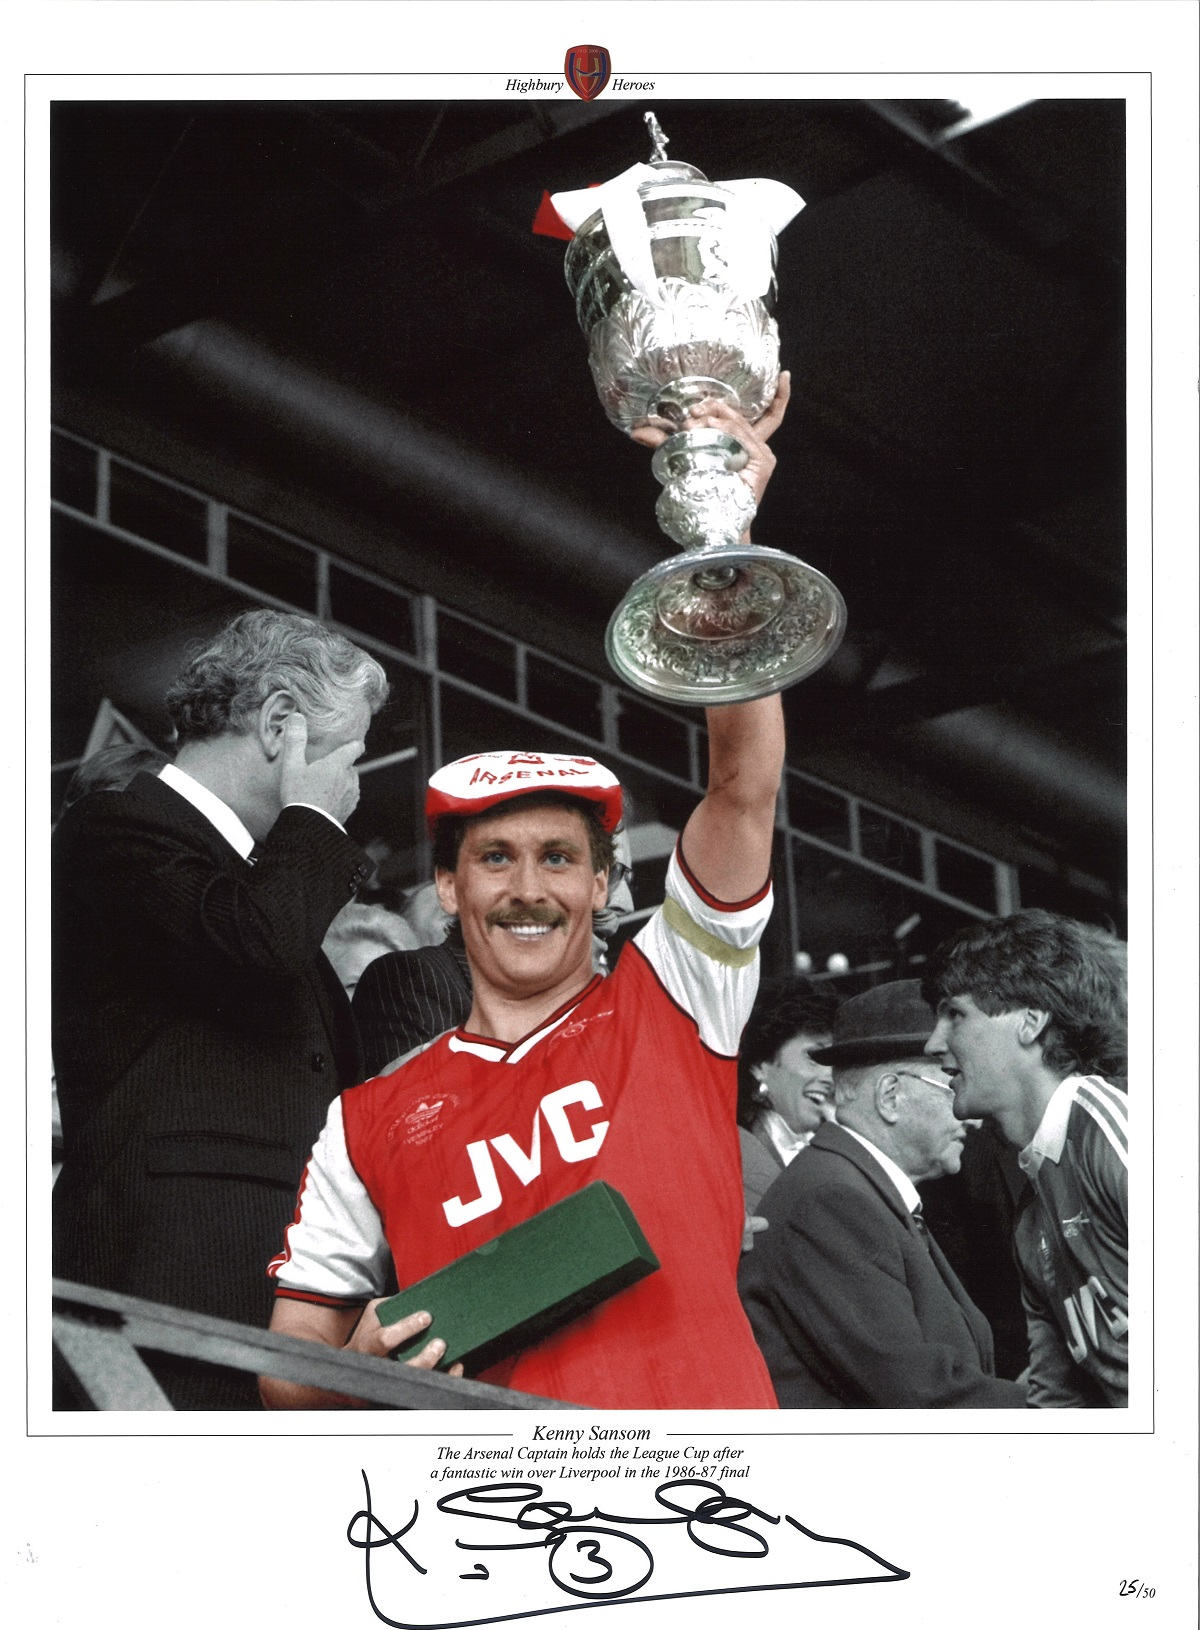 Football, Kenny Sansom 16x12 colourised promo photograph pictured celebrating with the League Cup